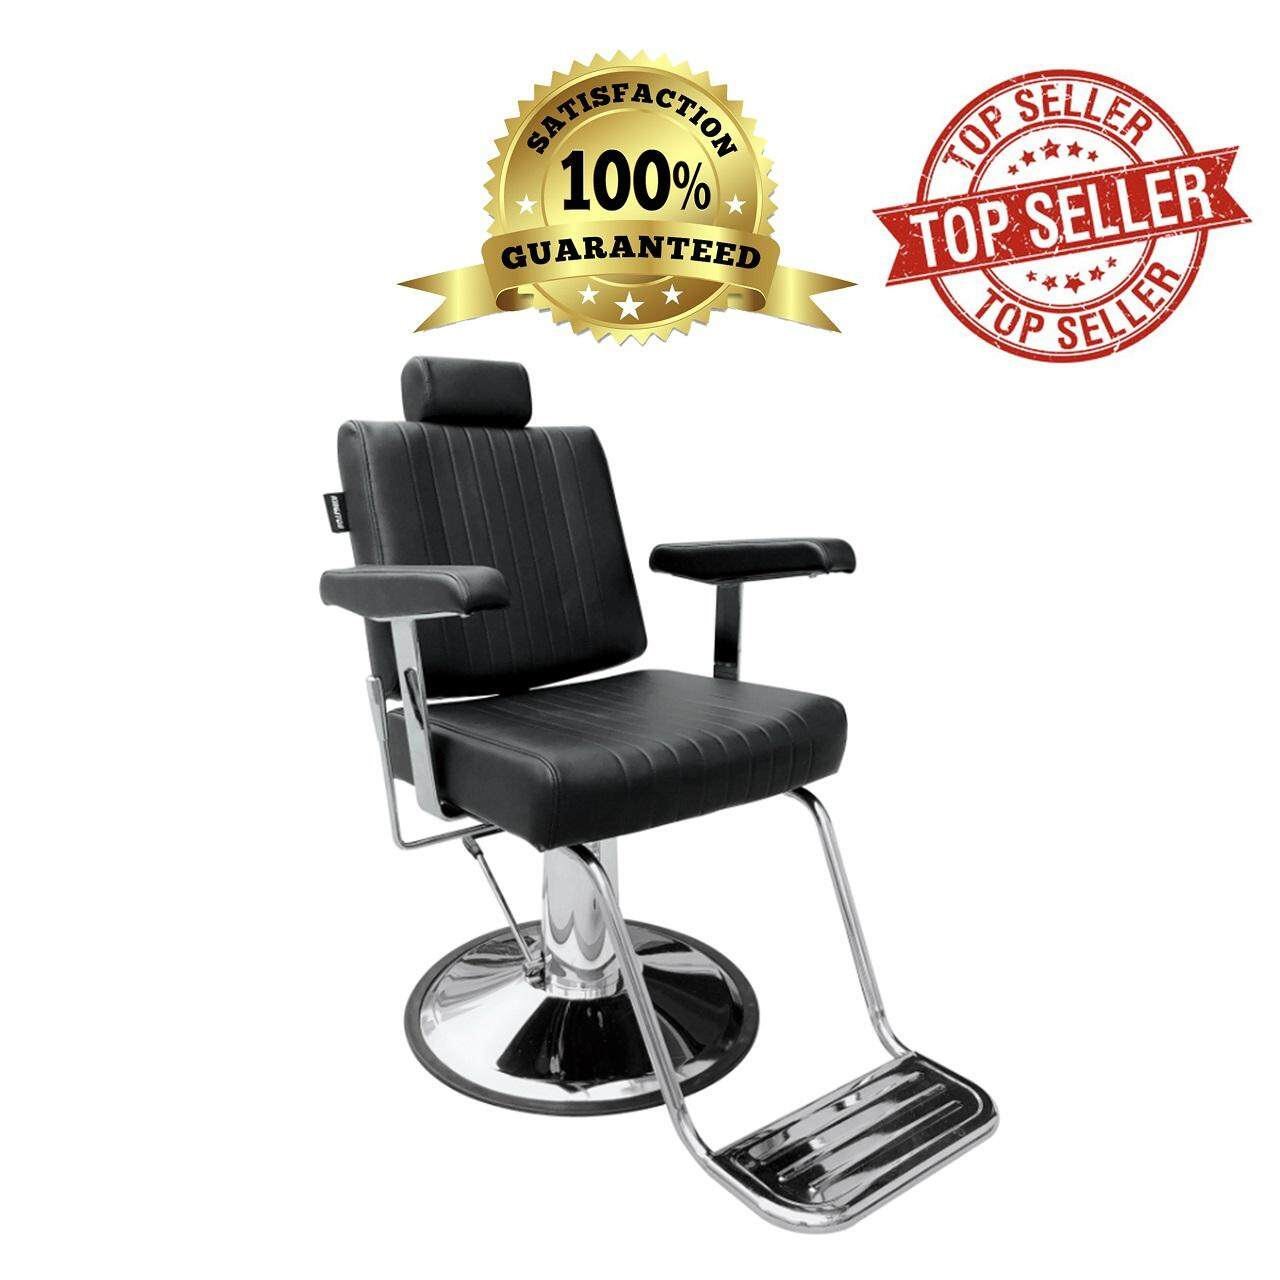 Home Home Office Chairs - Buy Home Home Office Chairs at Best Price in Malaysia | www.lazada.com.my